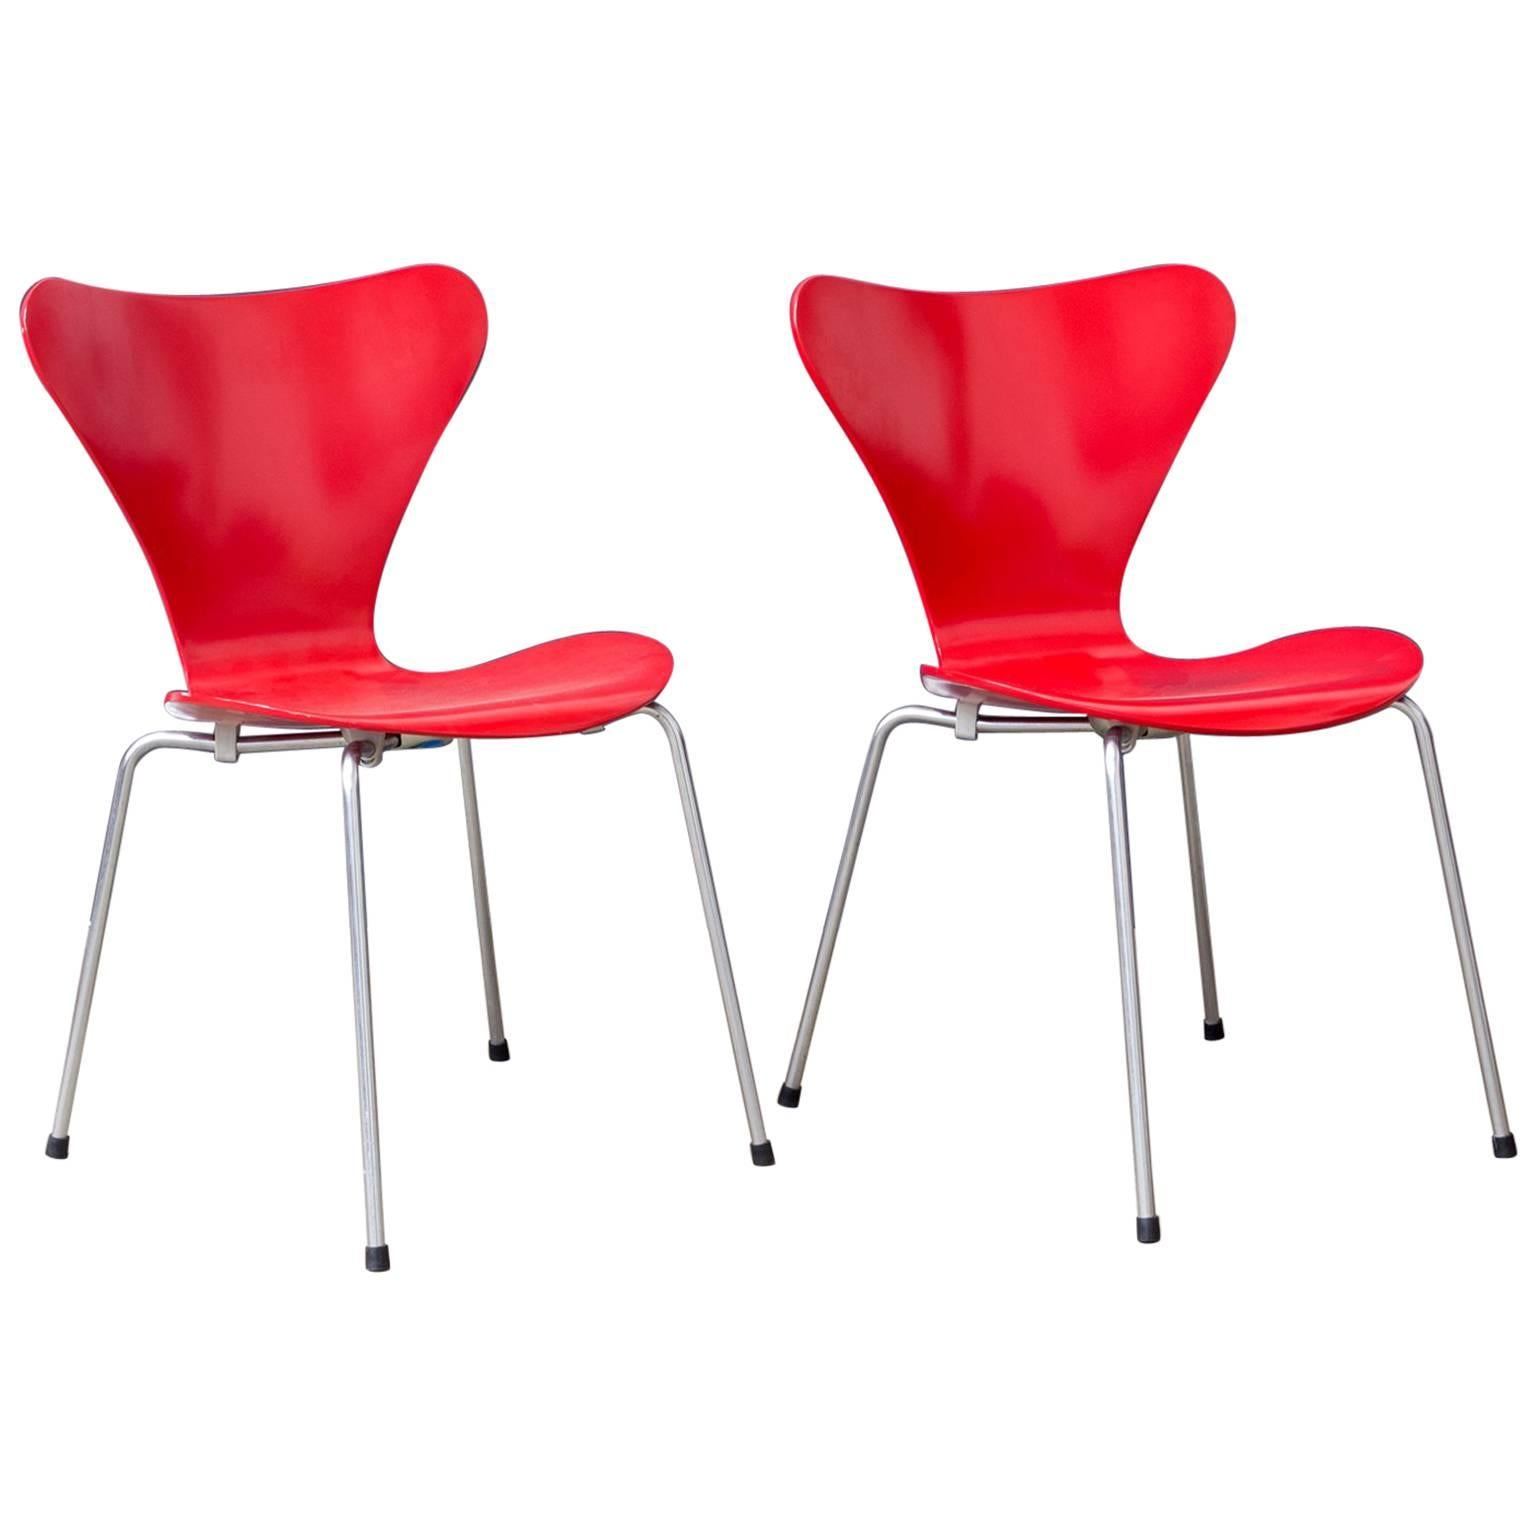 Exceptionnel 1955, Arne Jacobsen, Set Of Two Early Vintage Red Painted 3107 Butterfly  Chairs For